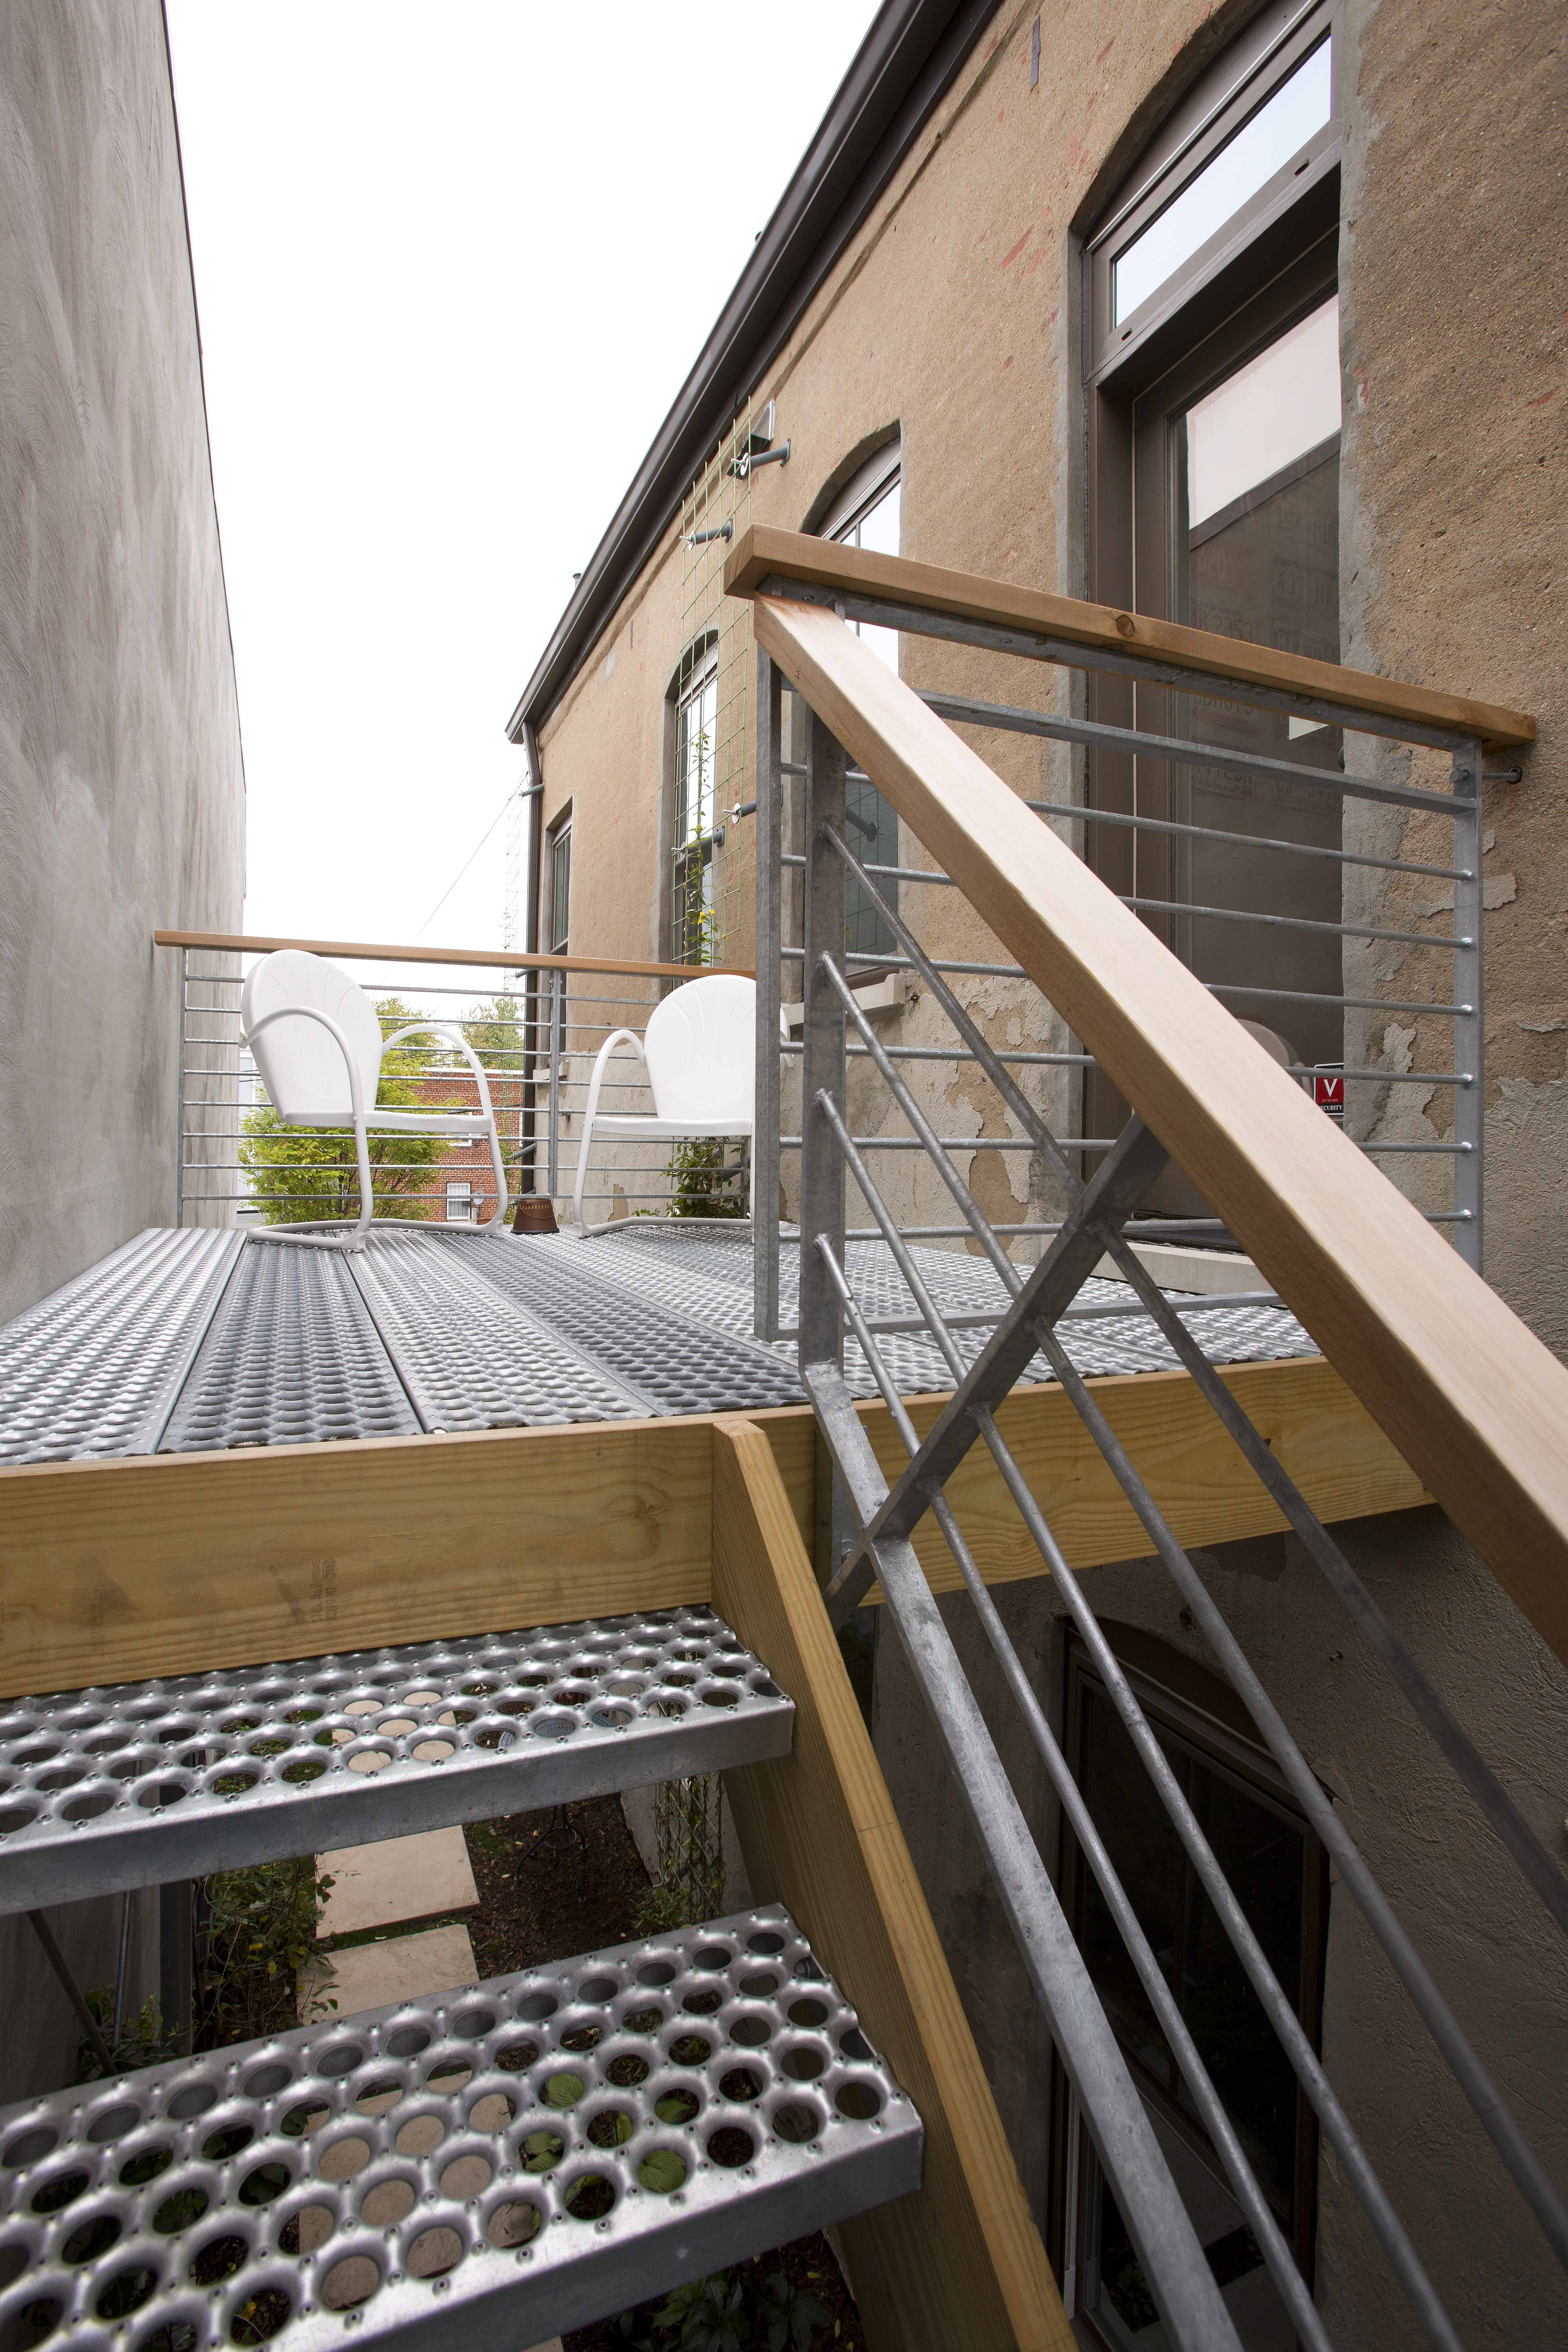 A landing coming off the back of the unit employs industrial-style stairs down to a garden walkway to the backyard.